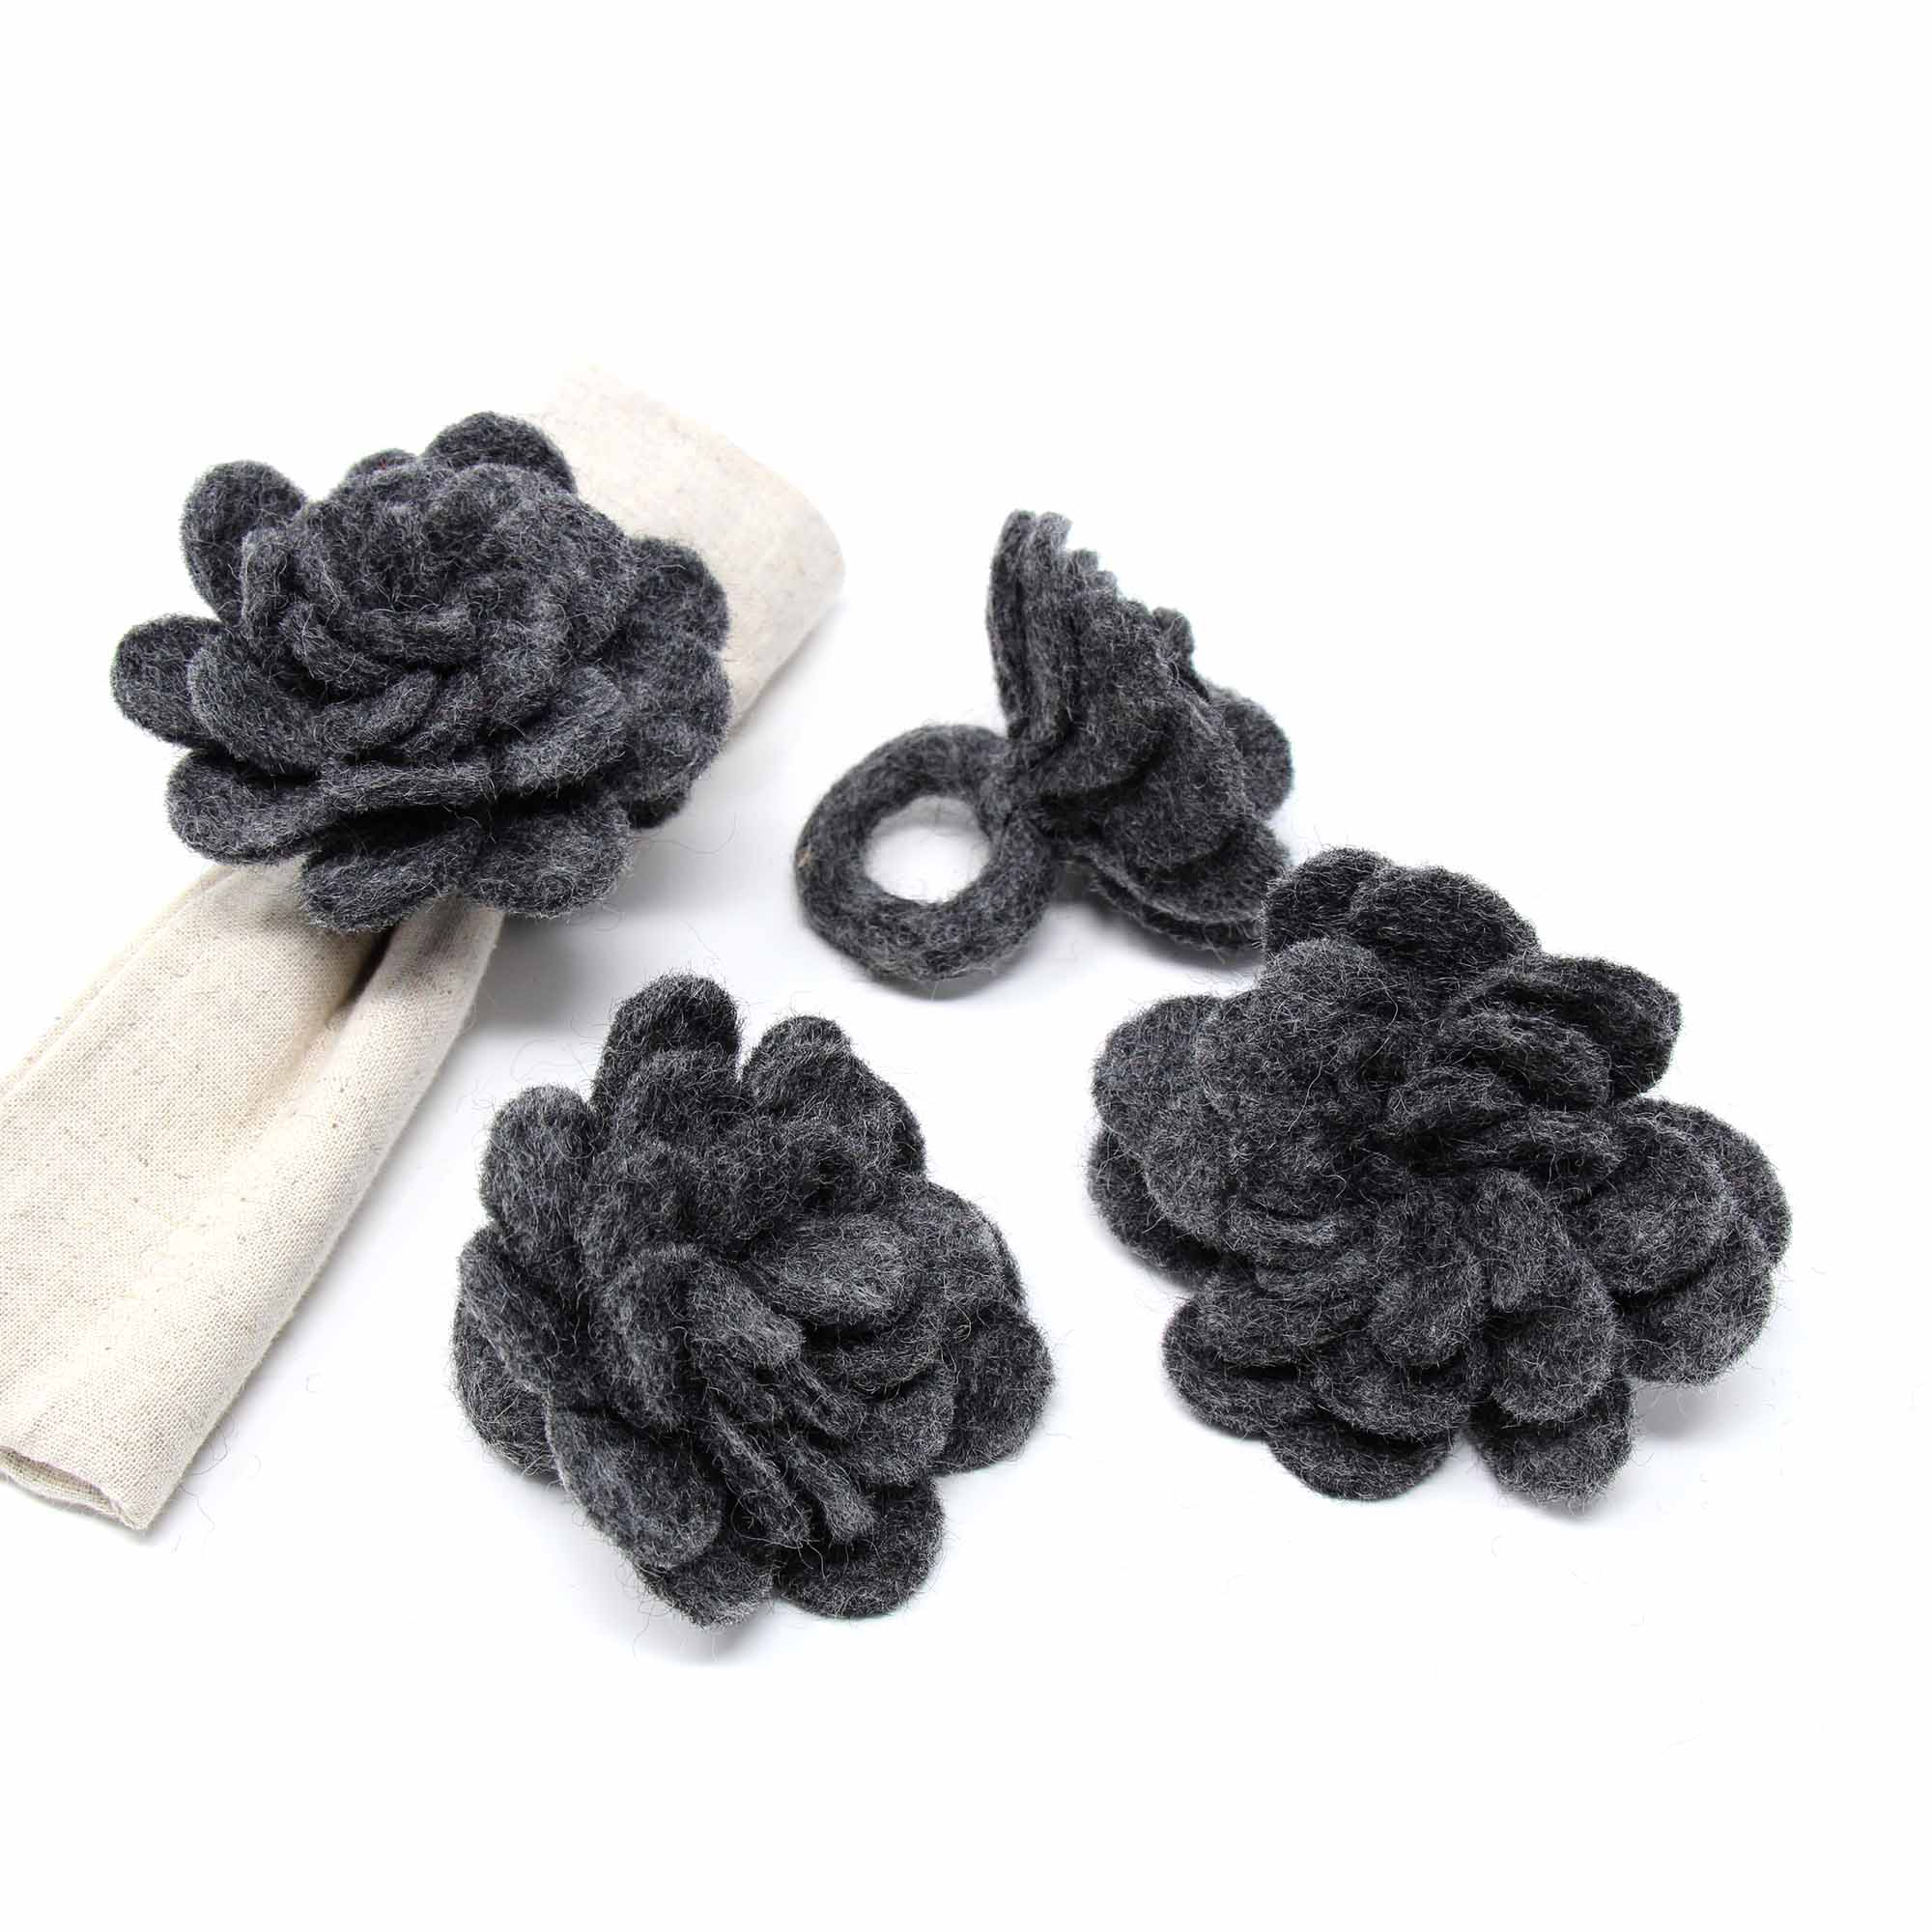 Set of 4 Napkin Rings, Charcoal Zinnias